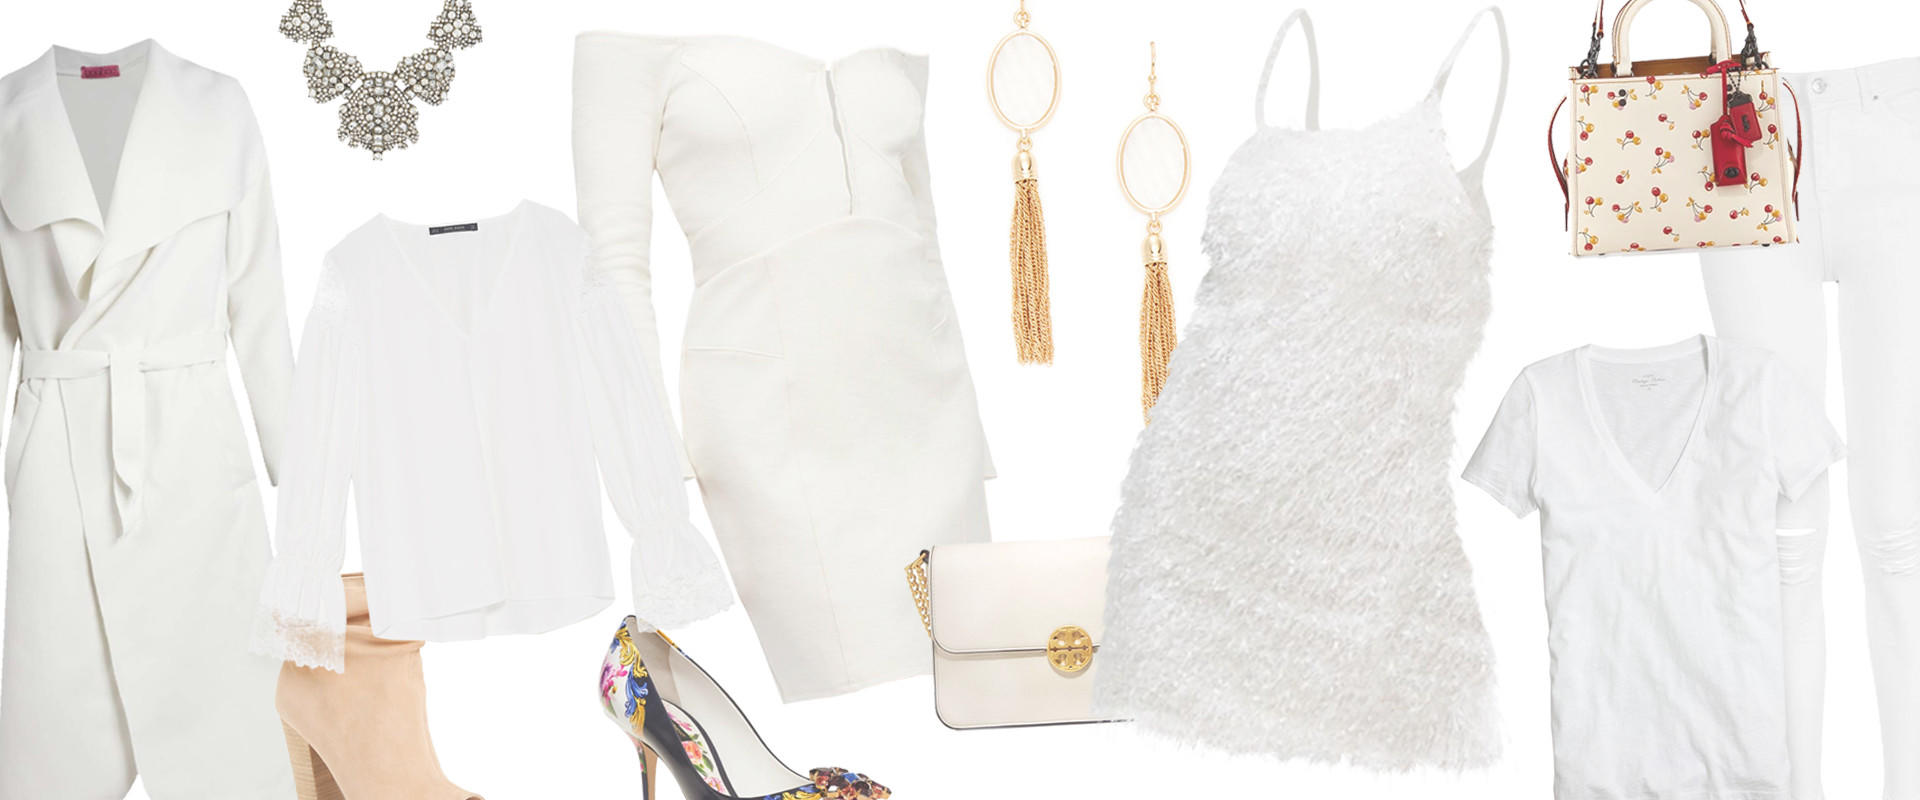 Break The Rules With These 5 Ways To Wear White After Labor Day